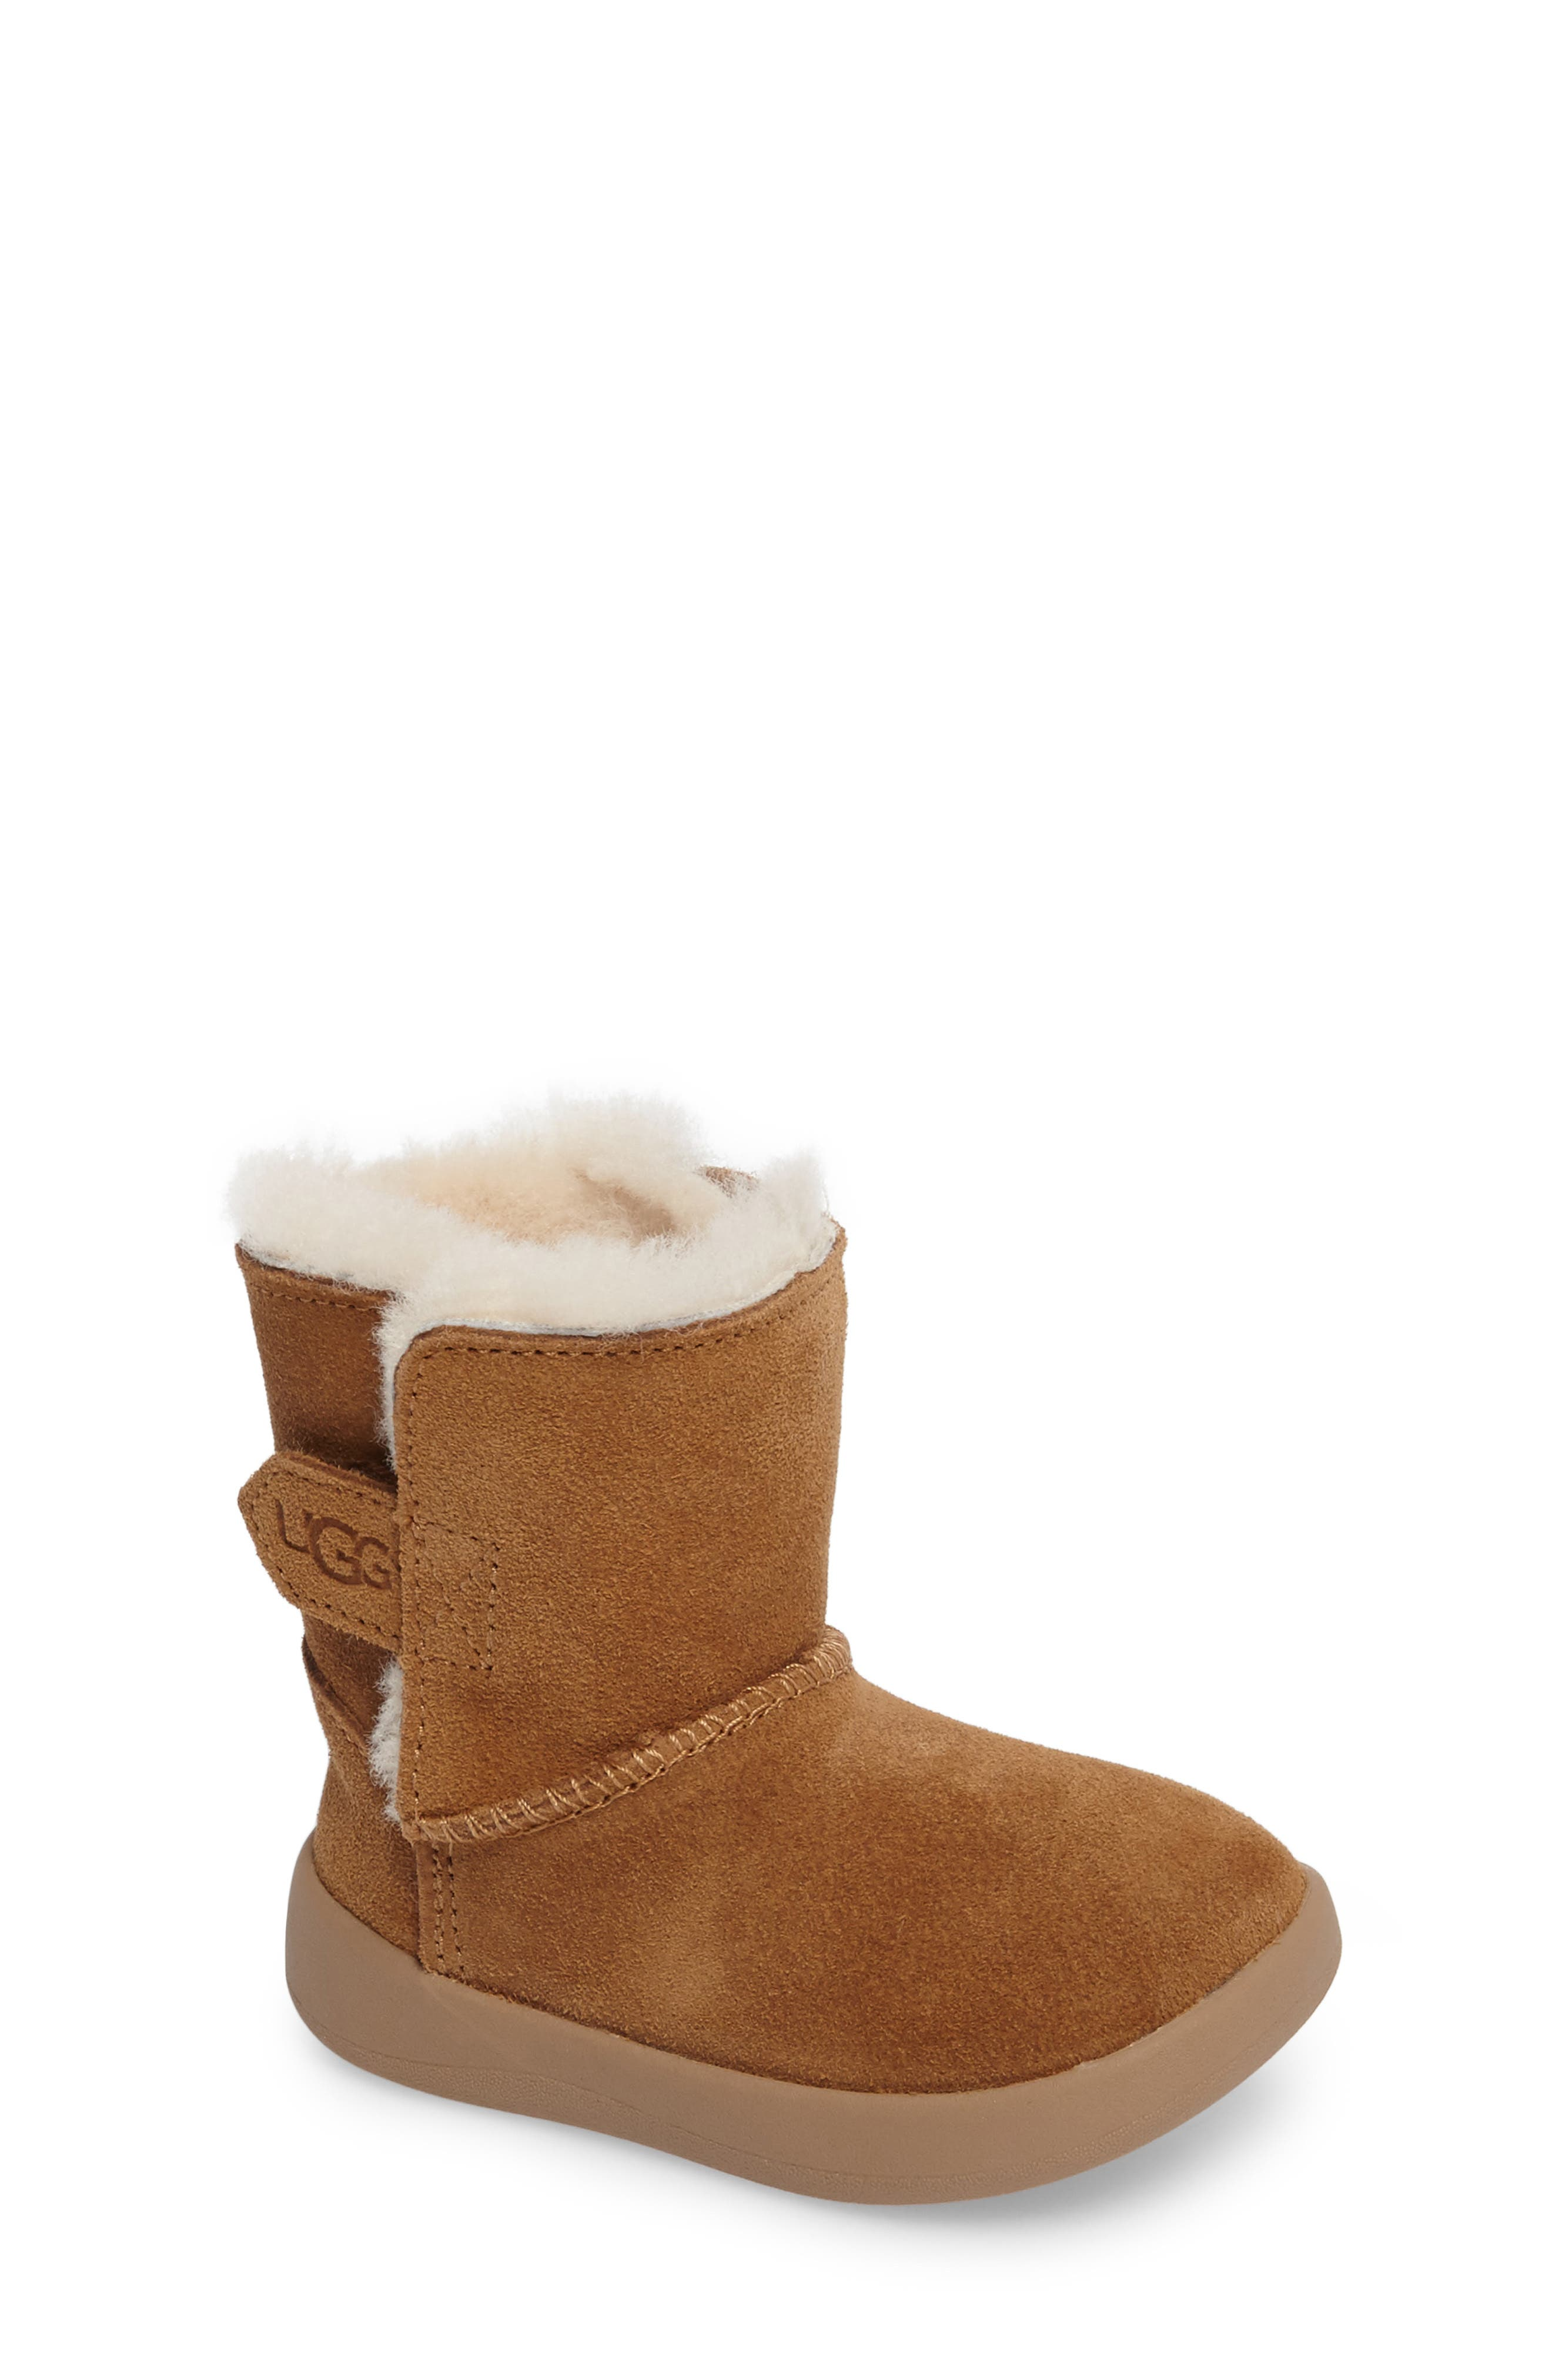 Keelan Genuine Shearling Baby Boot,                         Main,                         color, CHESTNUT BROWN